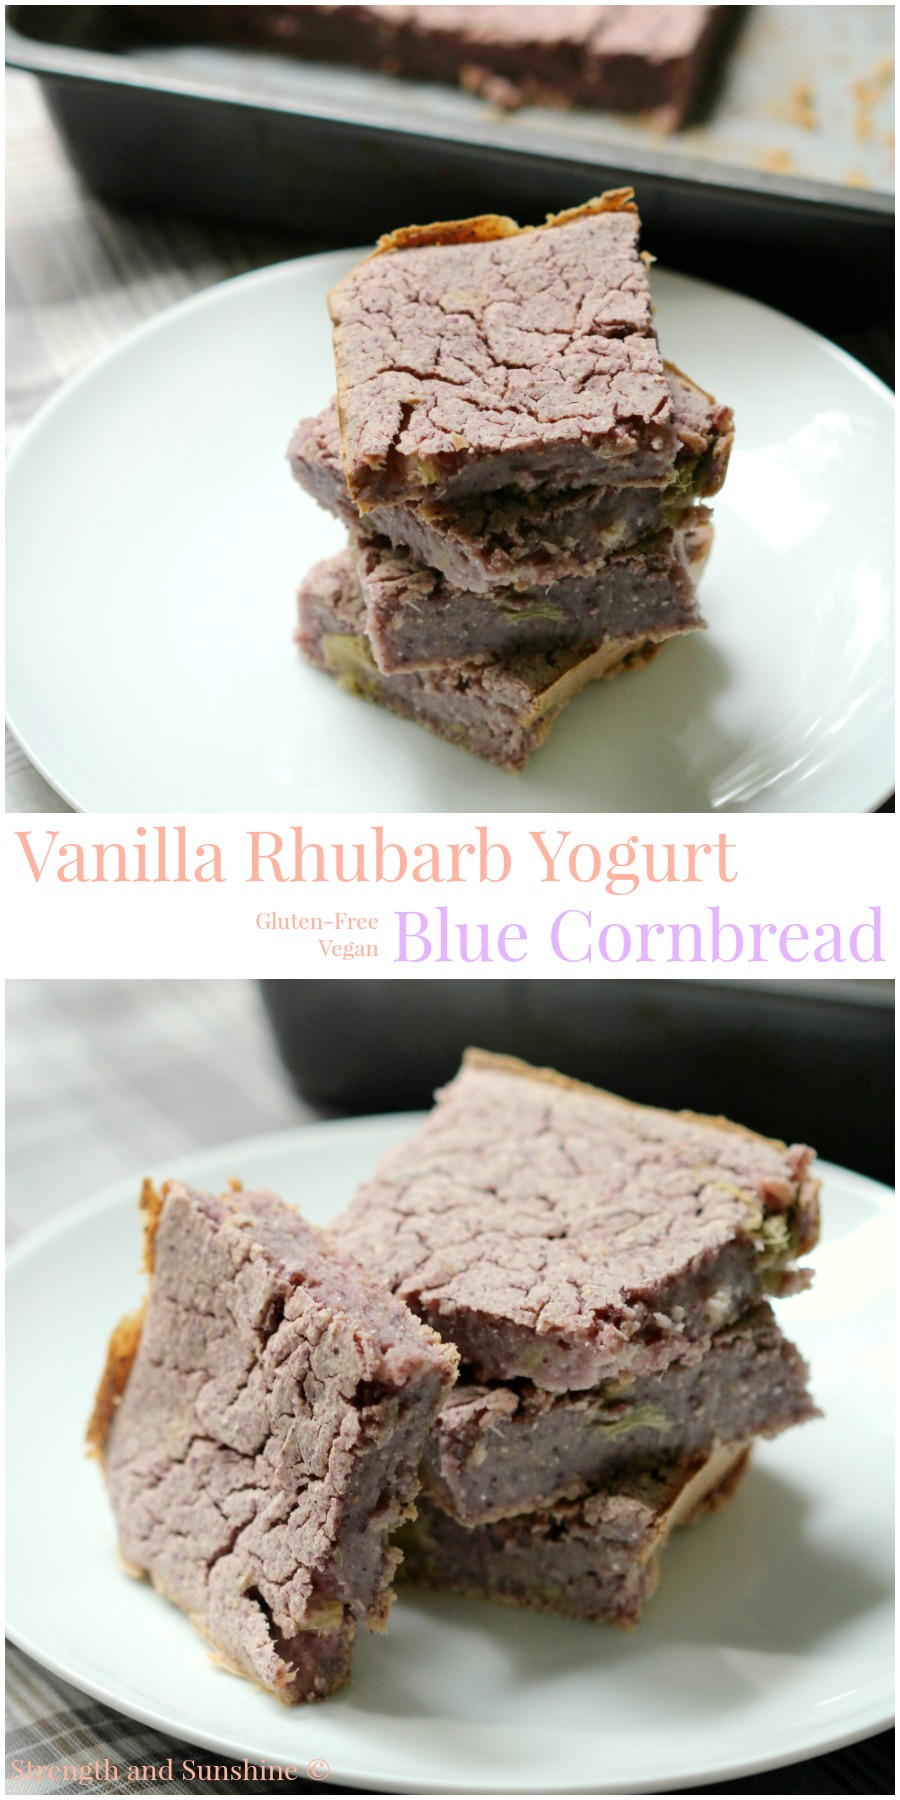 Vanilla Rhubarb Yogurt Blue Cornbread | Strength and Sunshine @RebeccaGF666 A sweet, tangy, and, moist yogurt blue cornbread with hints of vanilla and bits of rhubarb! A modern, gluten-free, vegan twist on the Southern classic recipe that will still make your grandmother proud!